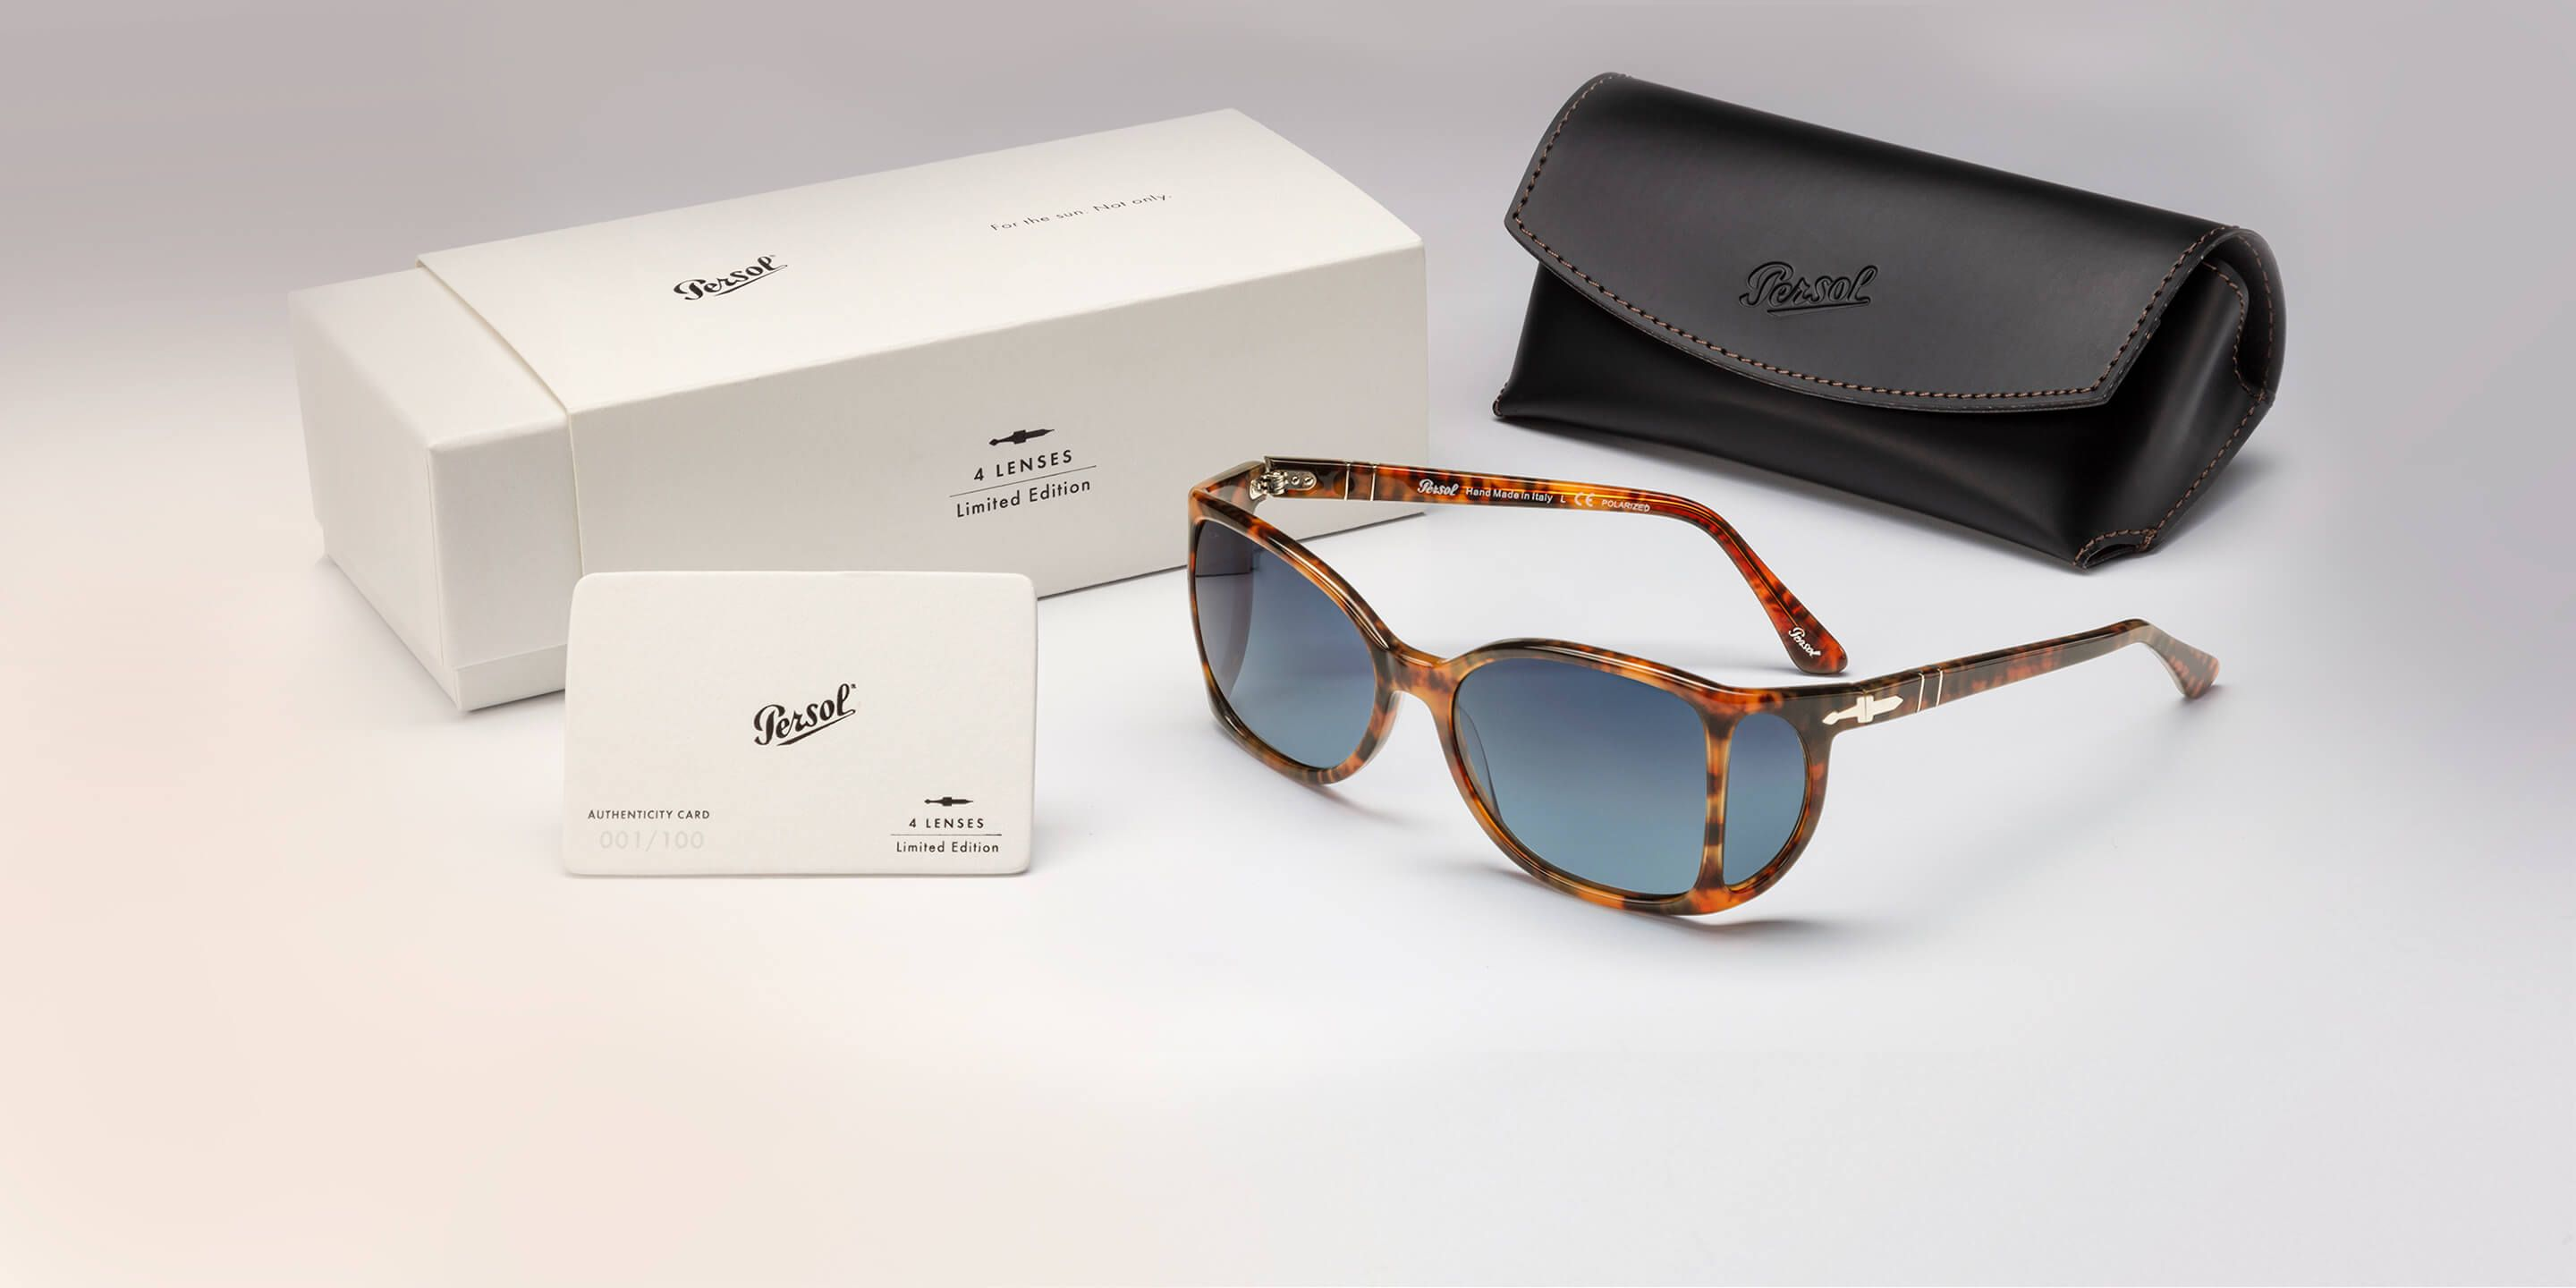 d28426311 4 Lenses Limited Edition. 100 pieces, exclusively on Persol.com